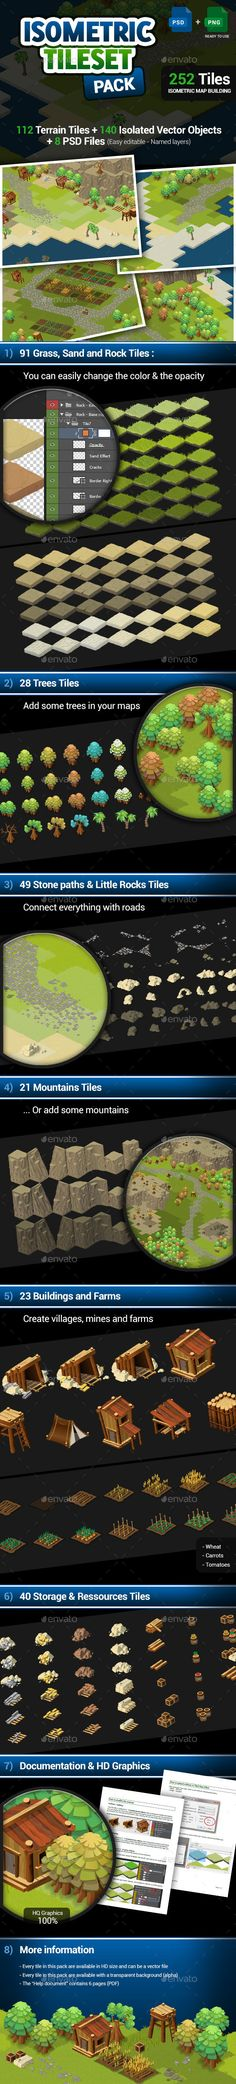 """This pack contains 252 tiles (divided into 8 """"ready to use"""" tileset) that you can use to create an Isometric Map for you game, or your project. You can use this pack your isometric RPG/MMORPG, of anything else. Game Design, Make Your Own Map, Rock Tile, Isometric Map, Dungeon Tiles, Unique Maps, Game Terrain, Pixel Art Games, Stone Path"""